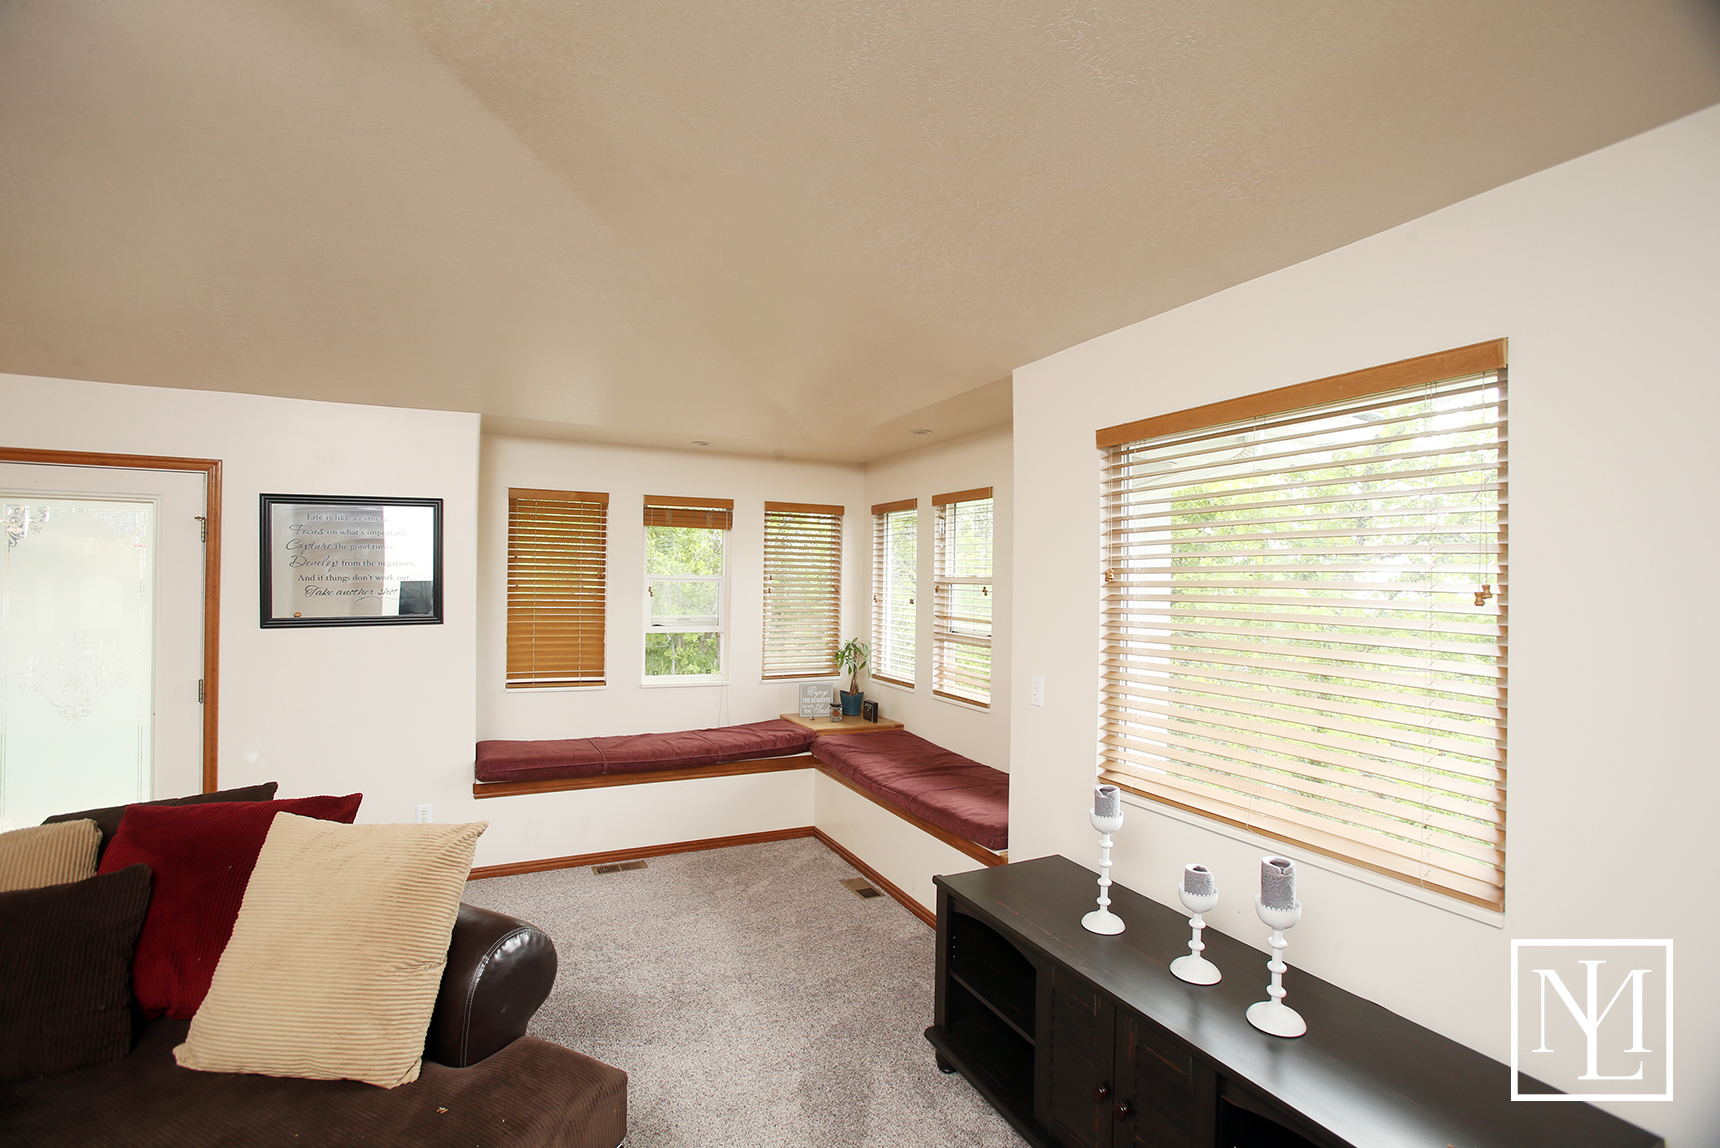 Sold Stately East Bench Home 1136 N 3050 E Layton